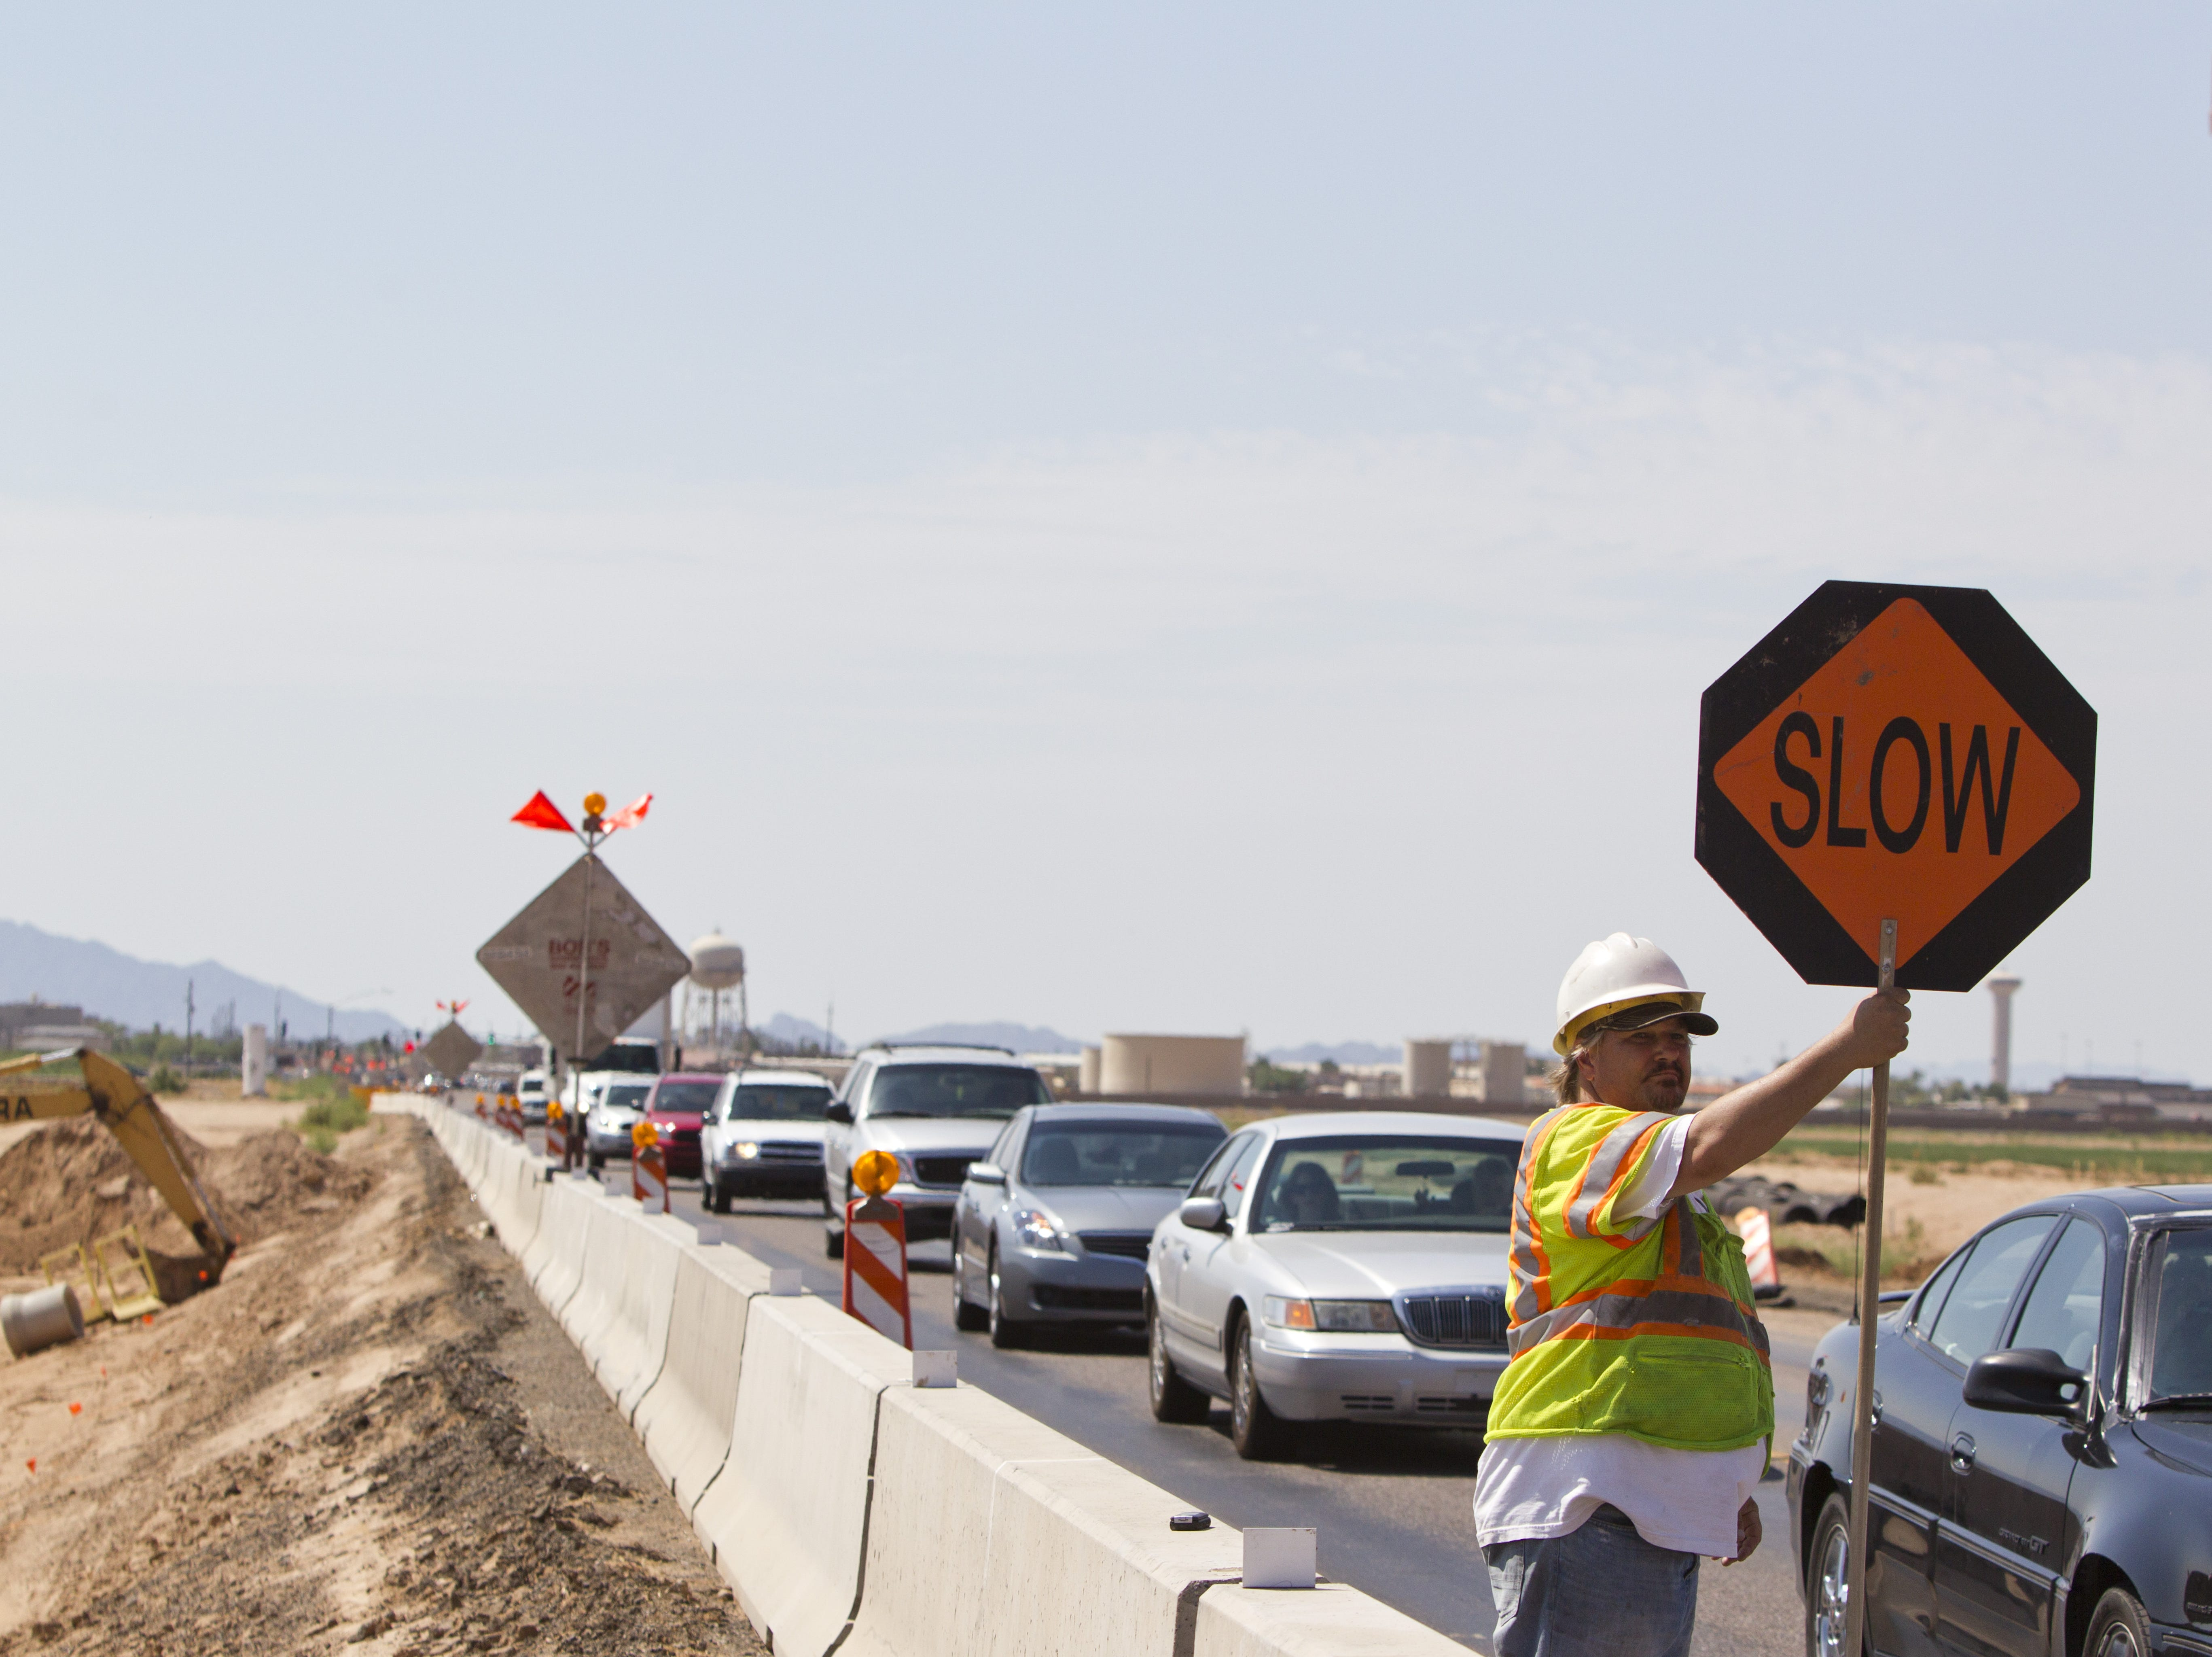 Chris Marko works on the  Northern Parkway, a major regional roadway project, near El Mirage in August 2012. Officials hope the Northern Parkway, which is resuming construction after a yearslong stall, will ease growing traffic congestion by providing an east-west corridor through El Mirage, Glendale and Peoria from Loop 303 to Grand Avenue.